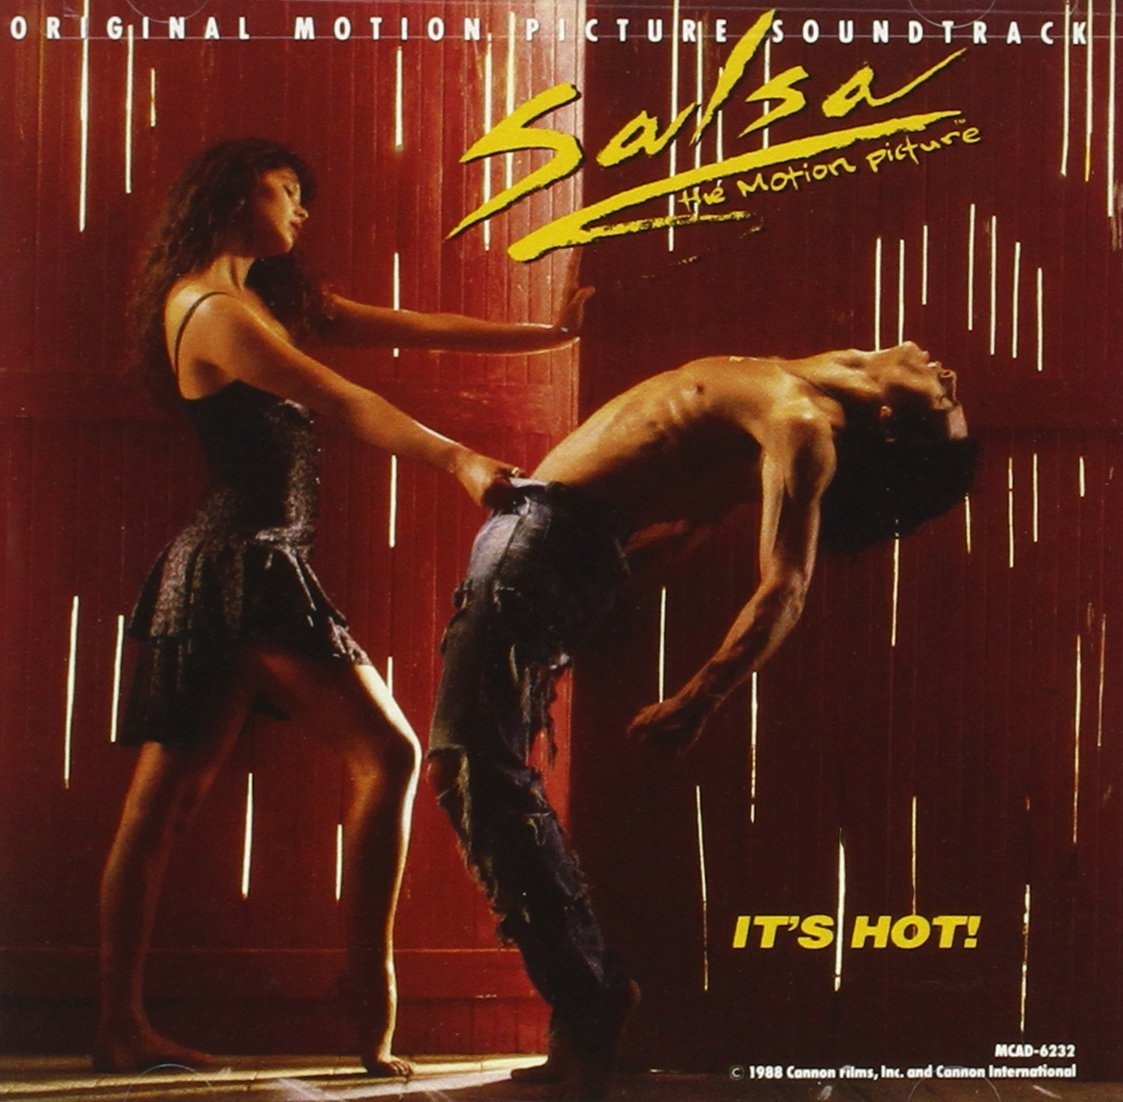 Salsa: Original Motion Picture Soundtrack by Universal Special Products